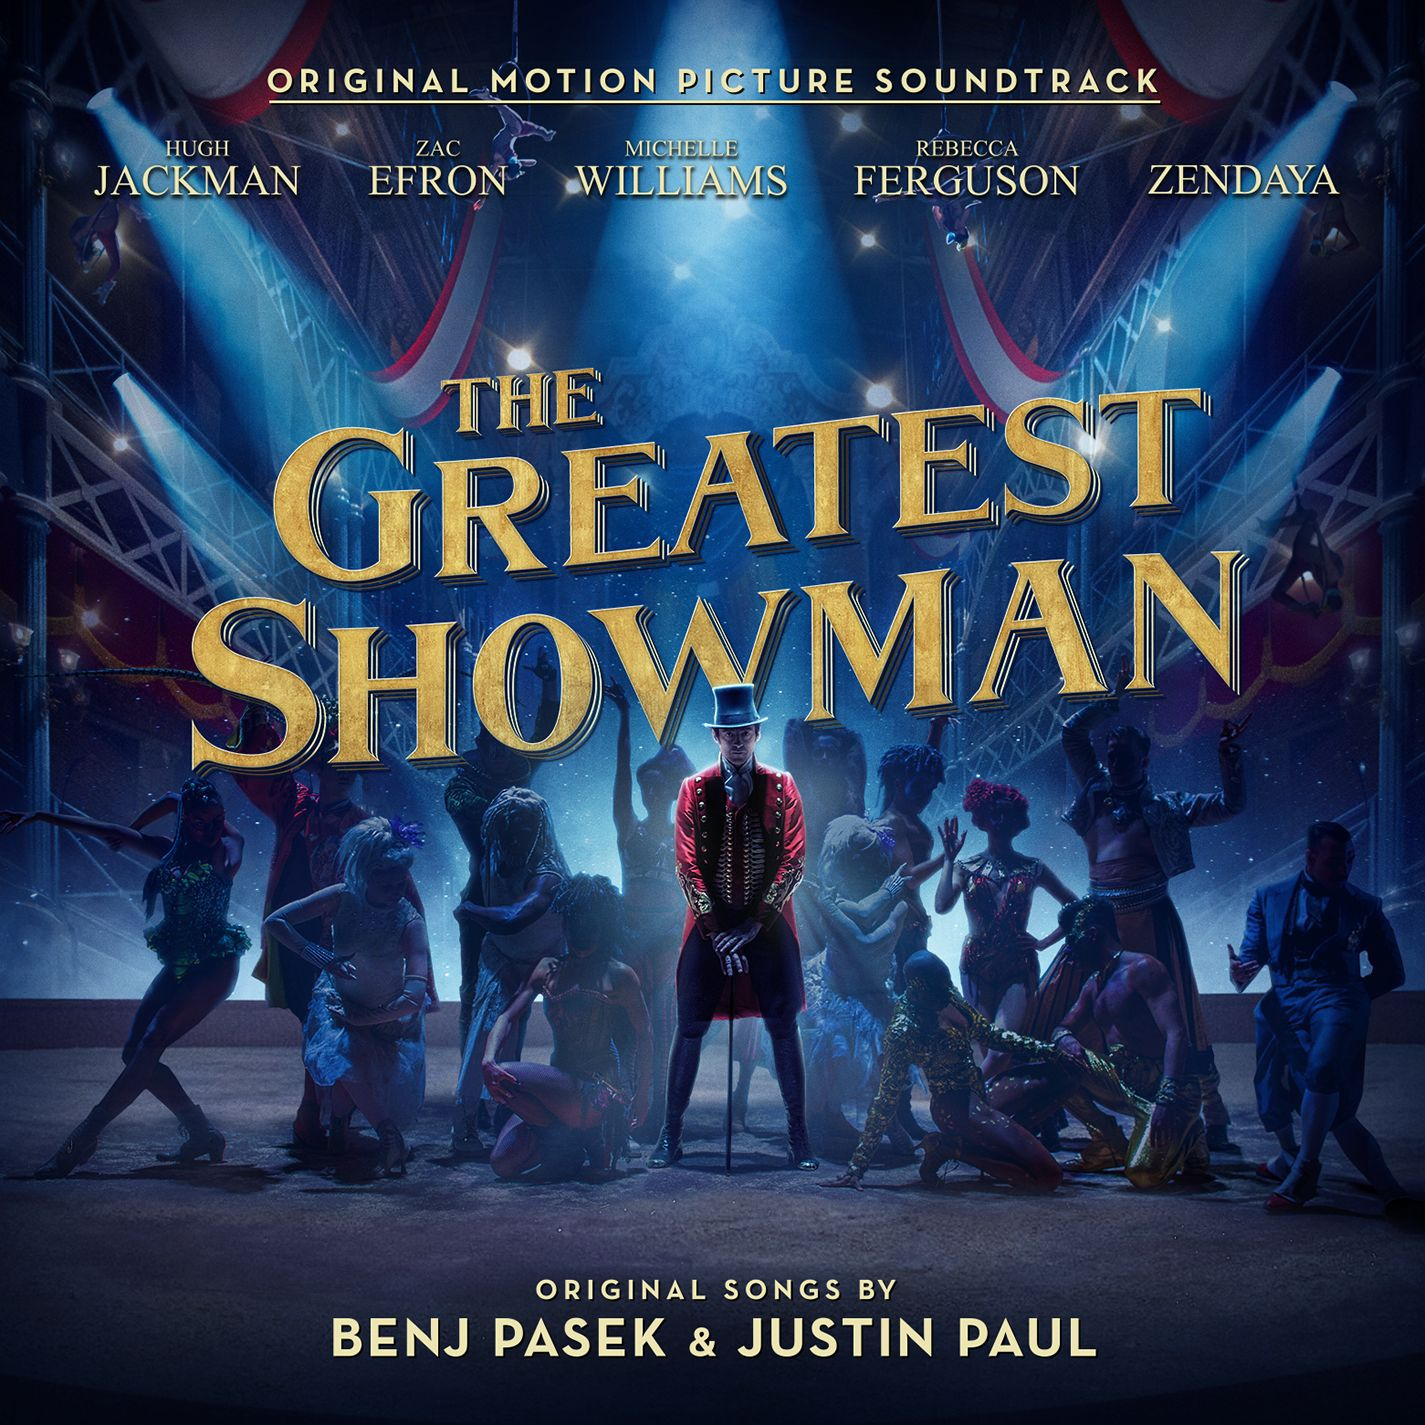 Motion Picture Cast Recording - The Greatest Showman album cover